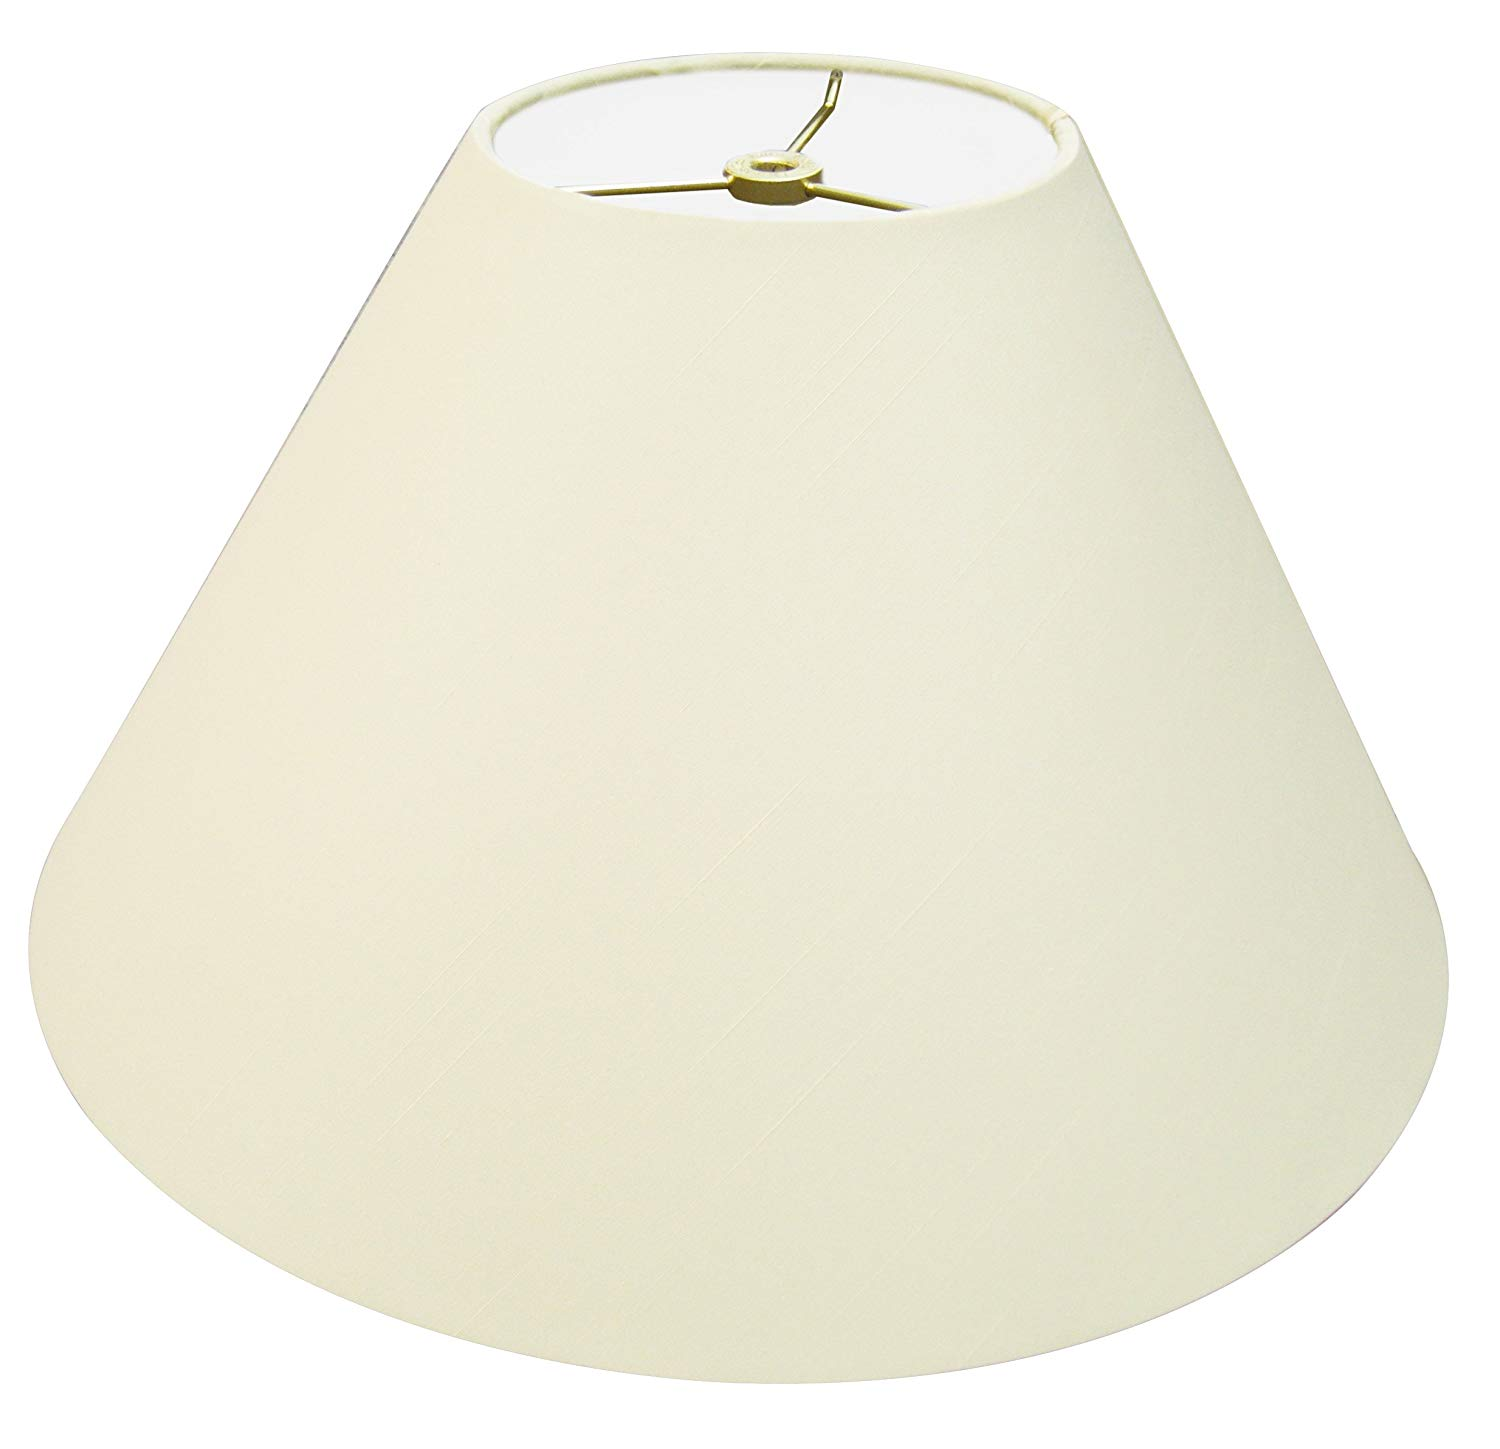 Cheap Coolie Lamp Shade Find Coolie Lamp Shade Deals On Line At Alibaba Com